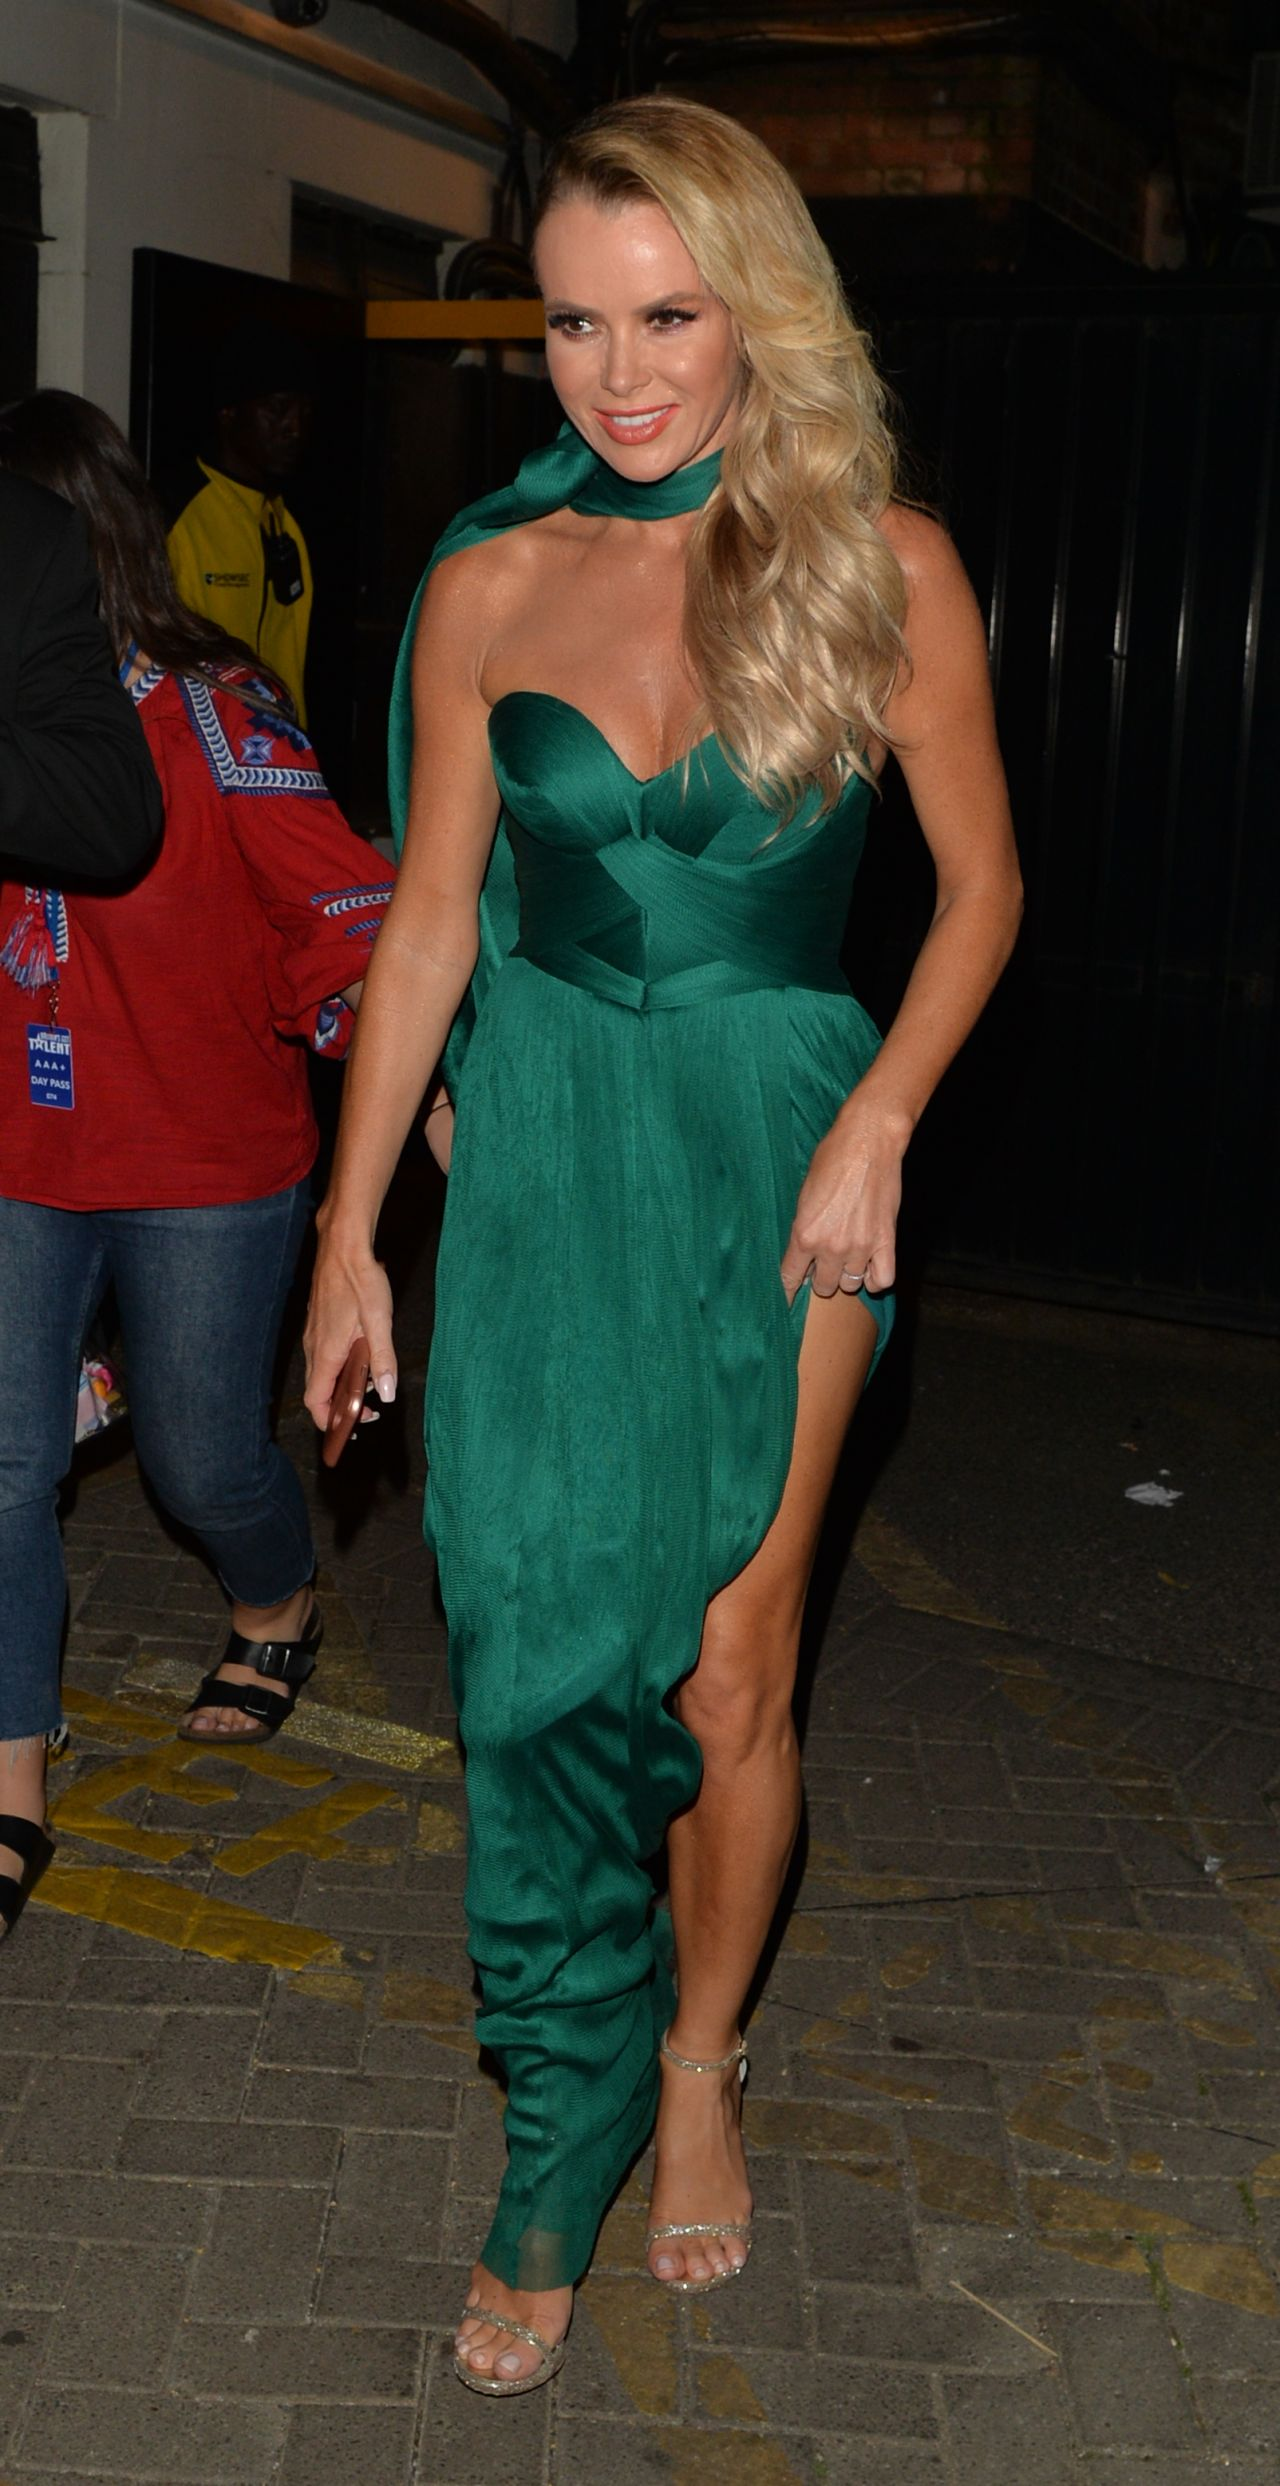 Amanda Holden Leaving The Apollo Theater In London 05 31